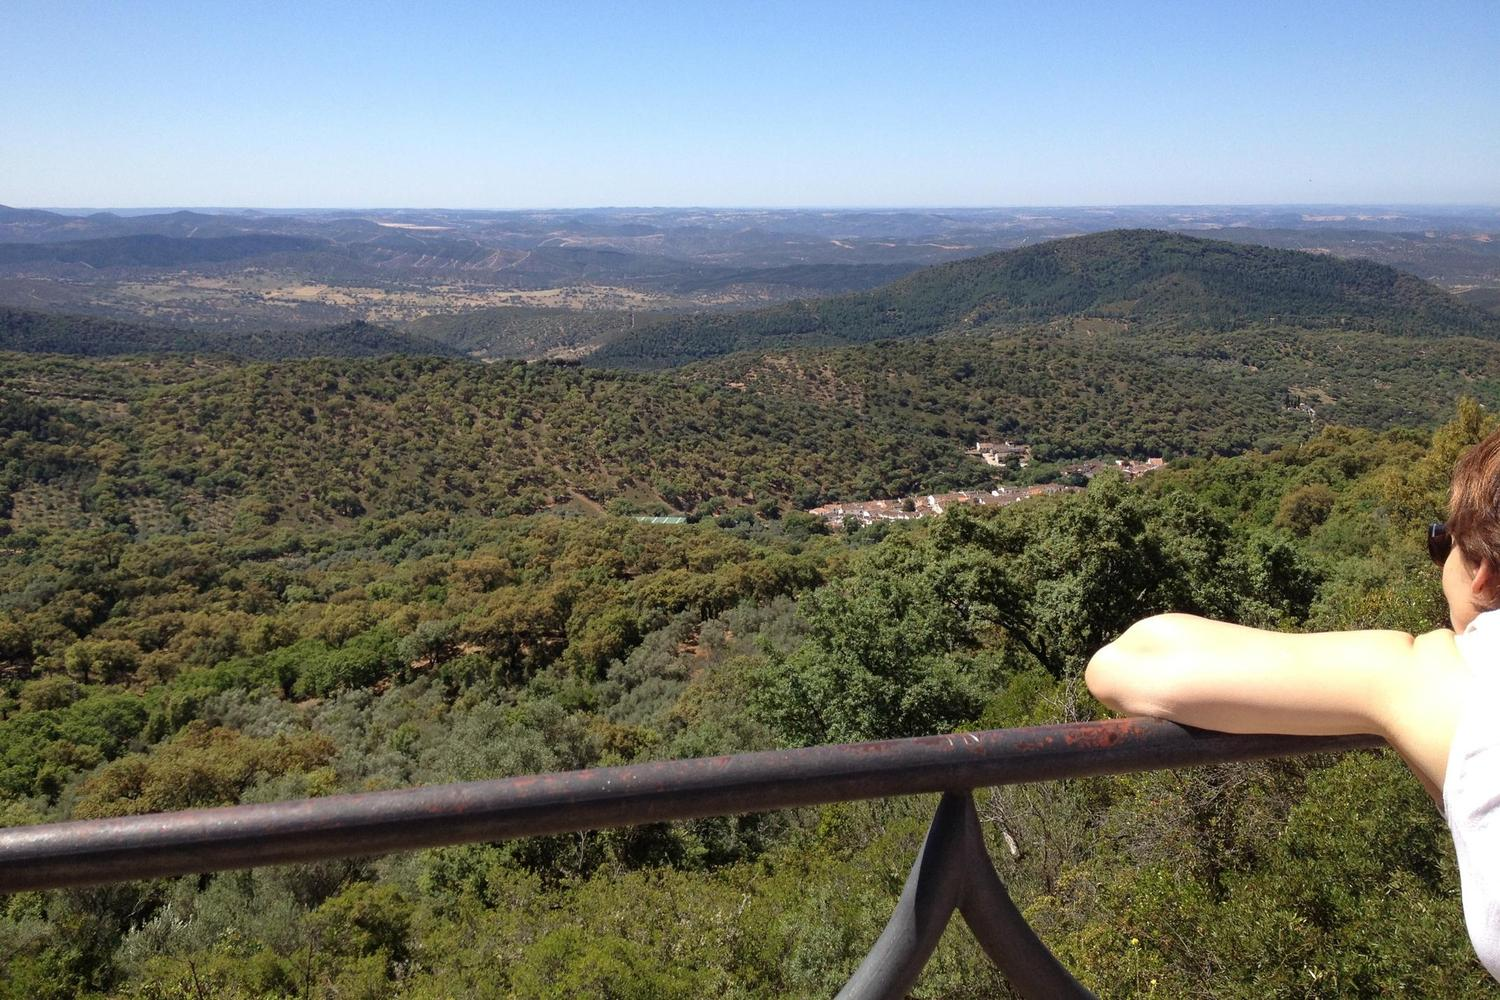 Looking out over the Aracena hills